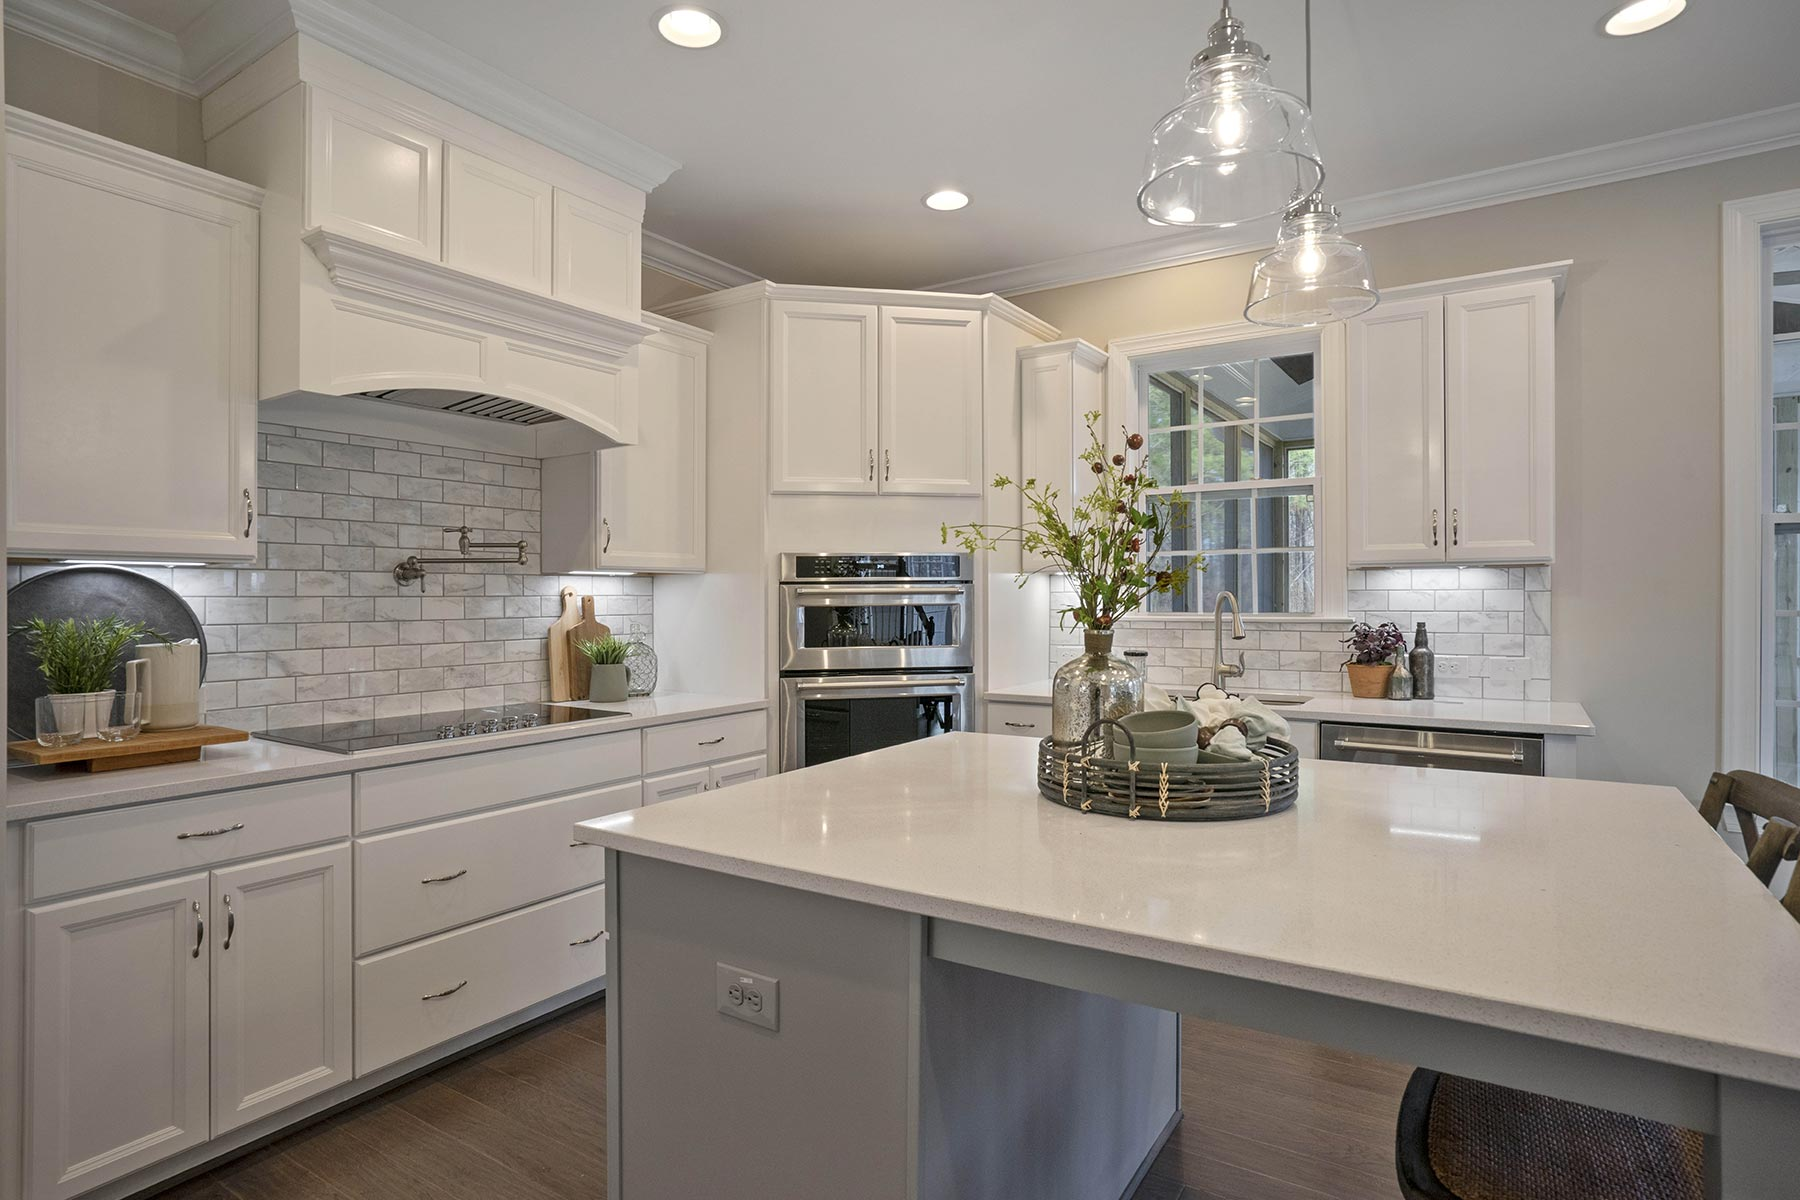 Juniper Plan Kitchen at Ballentine Place in Holly Springs North Carolina by Mattamy Homes